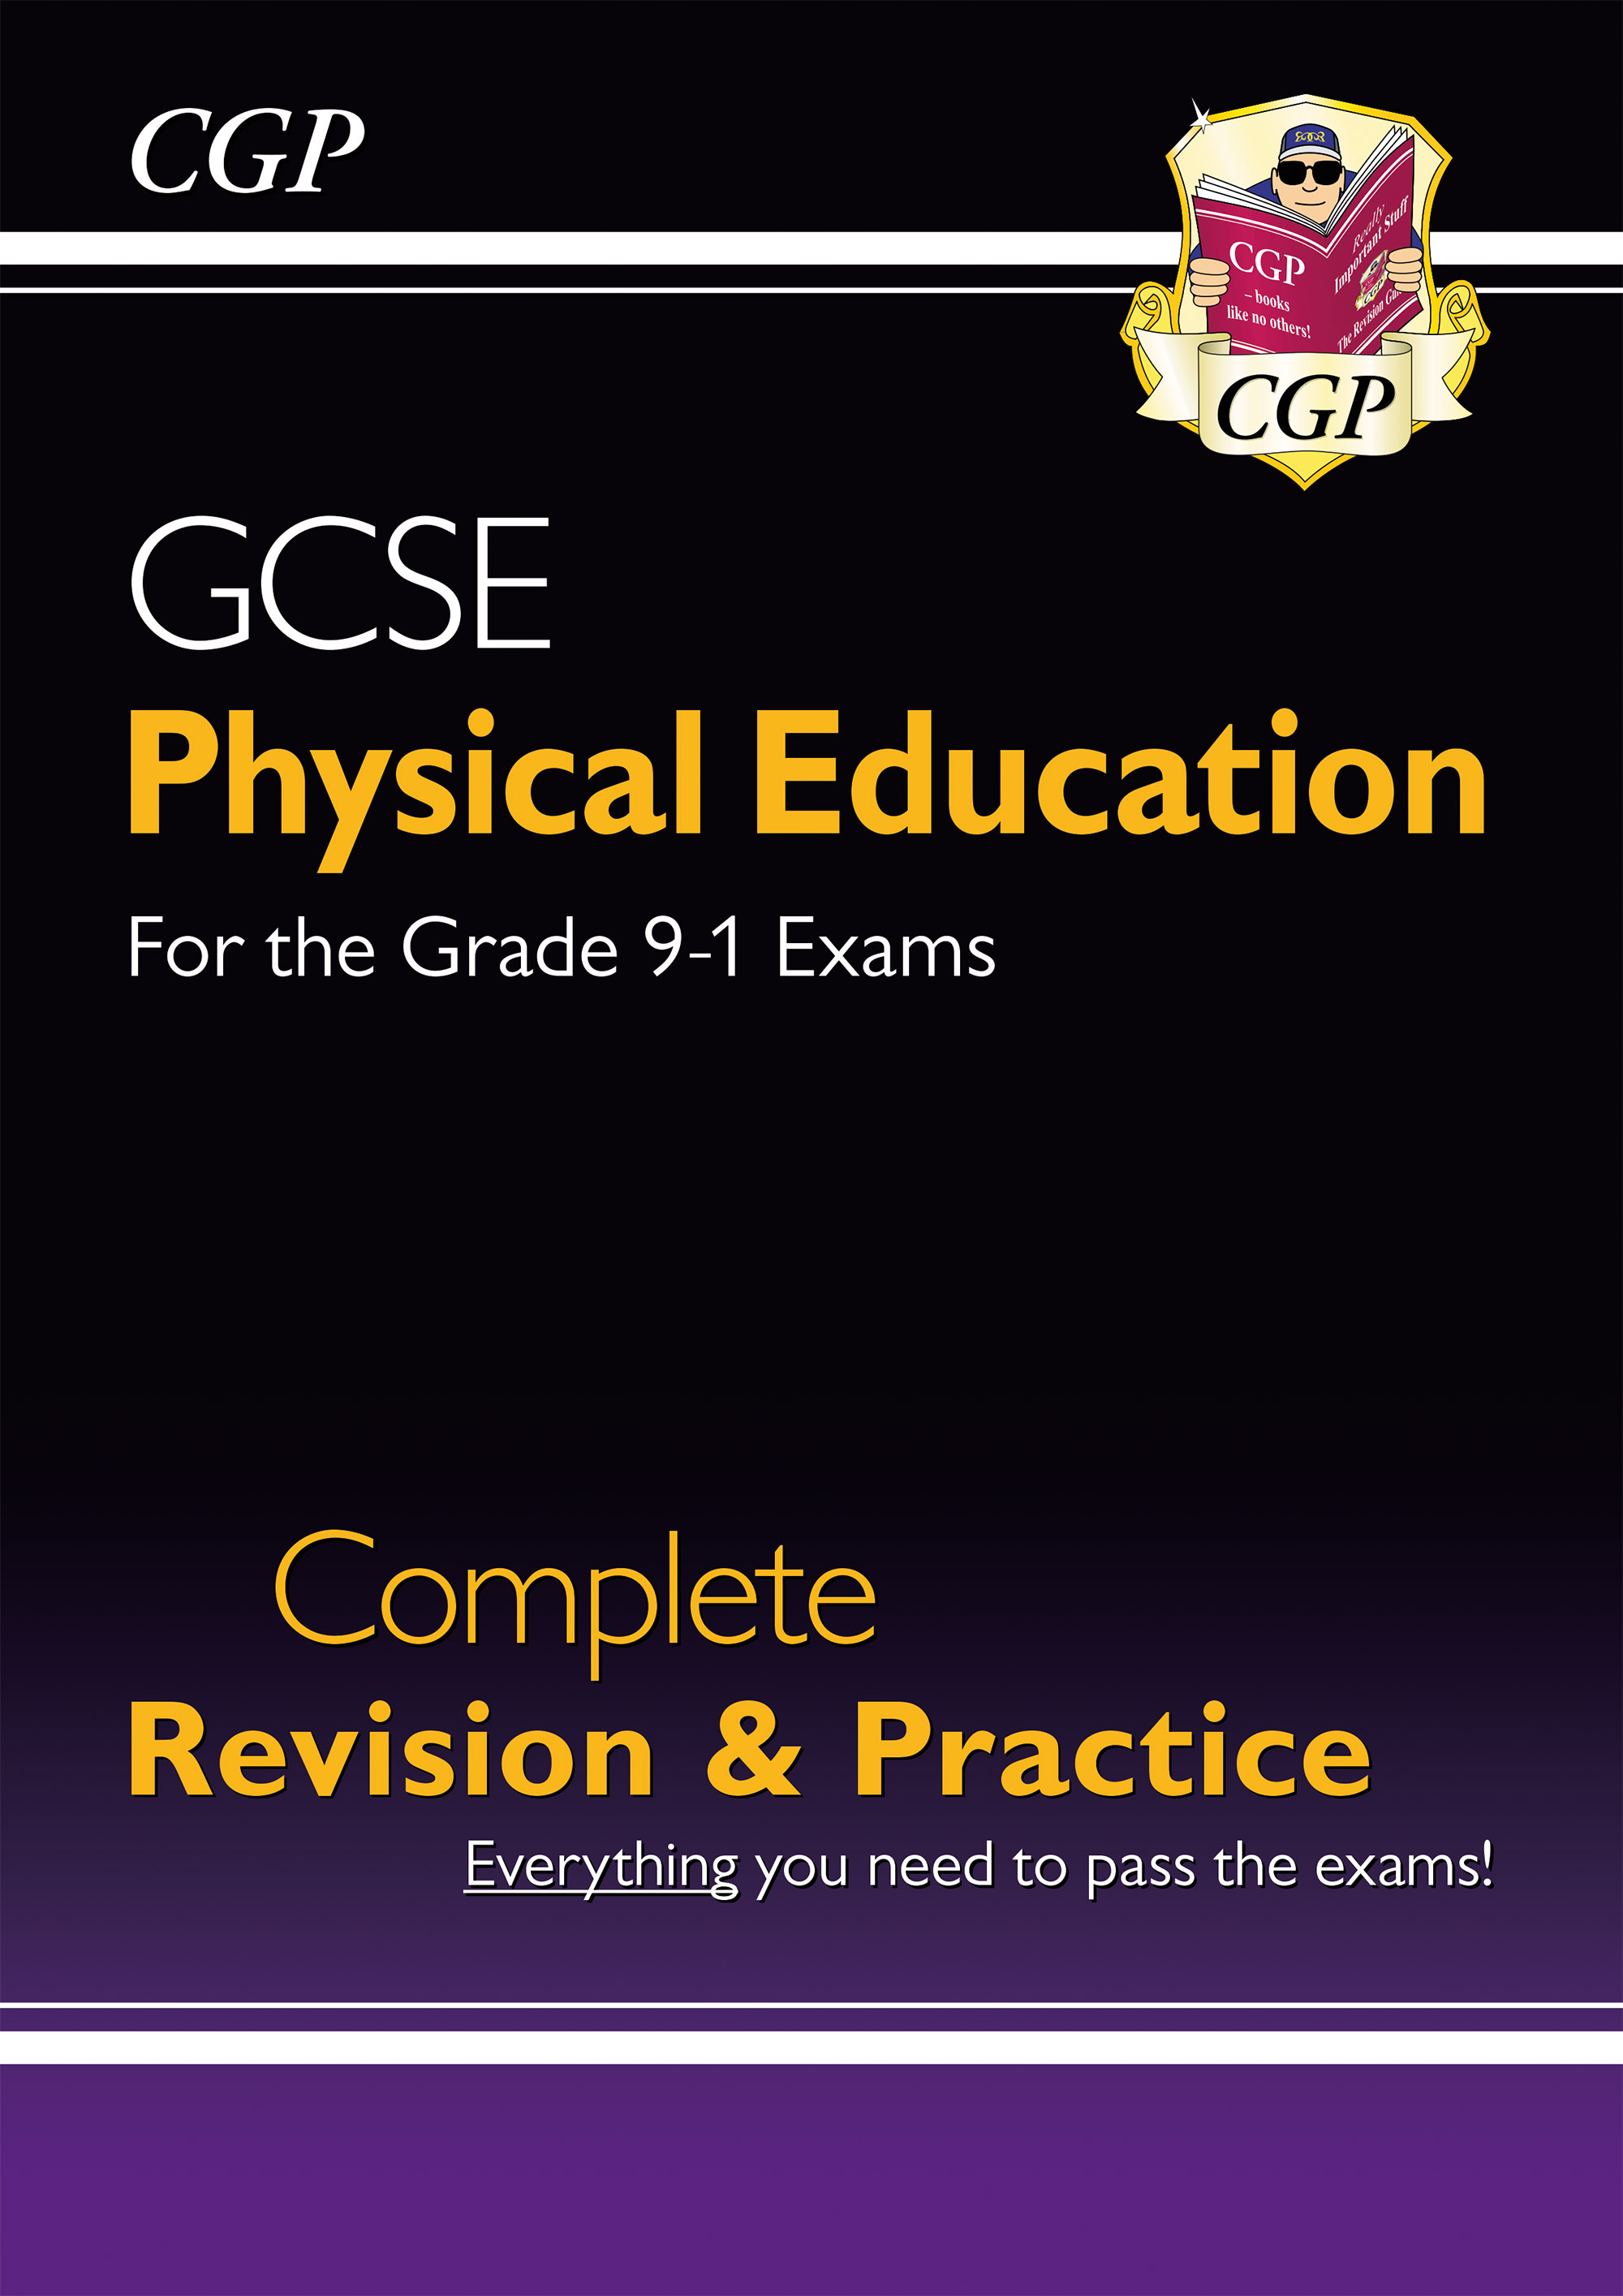 JHS44DK - New GCSE Physical Education Complete Revision & Practice - for the Grade 9-1 Course